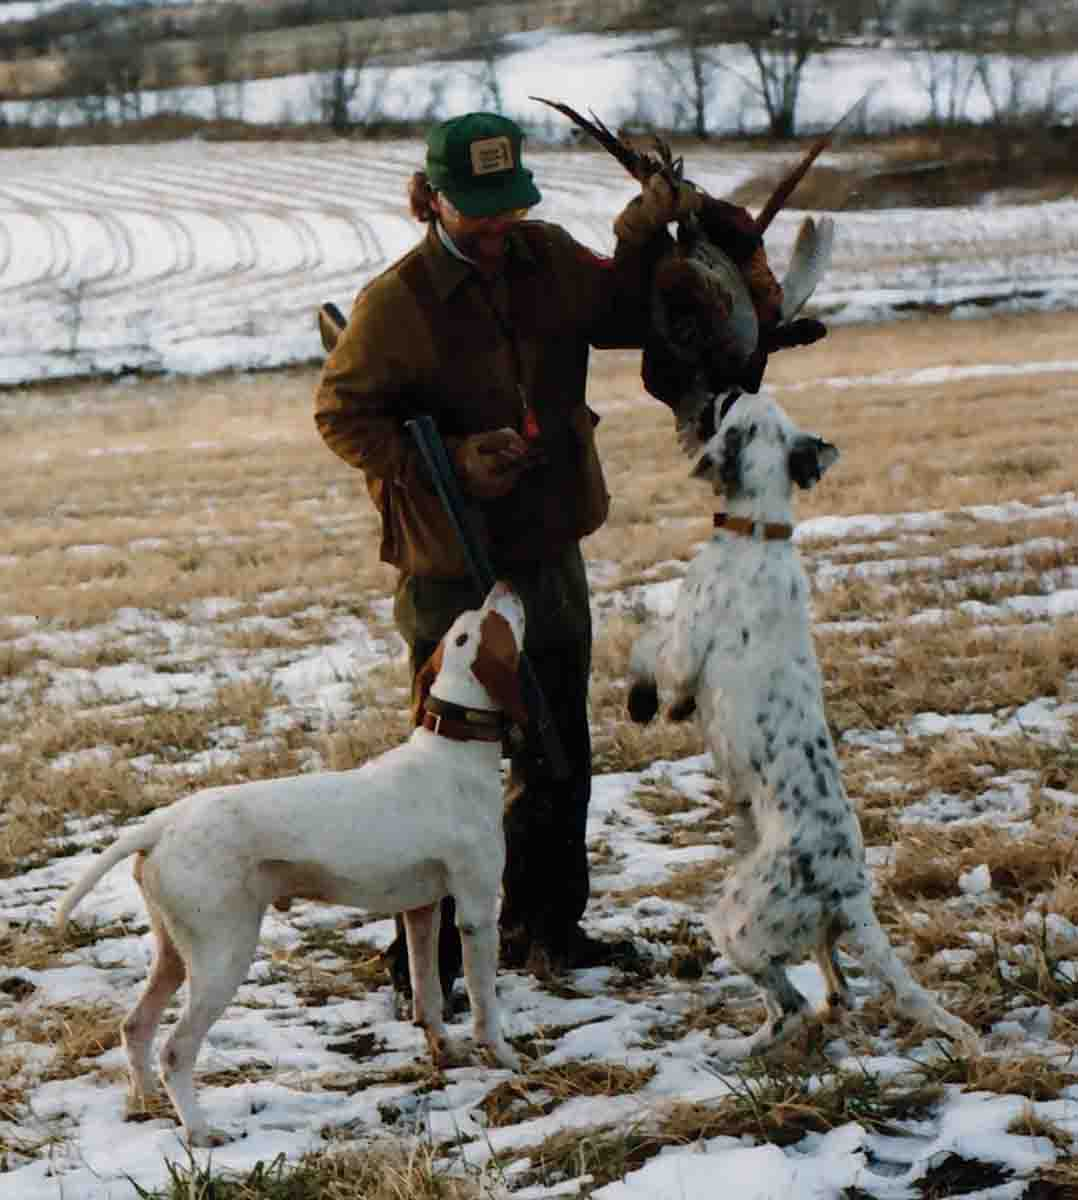 How George Hamilton's eyes did shine whenever he described what was one of the great adventures in his life – the marvel of real bird dogs that knew their business and pheasants in numbers that no Ohio farm boy could have ever imagined. (Photo/Nancy Johnson)